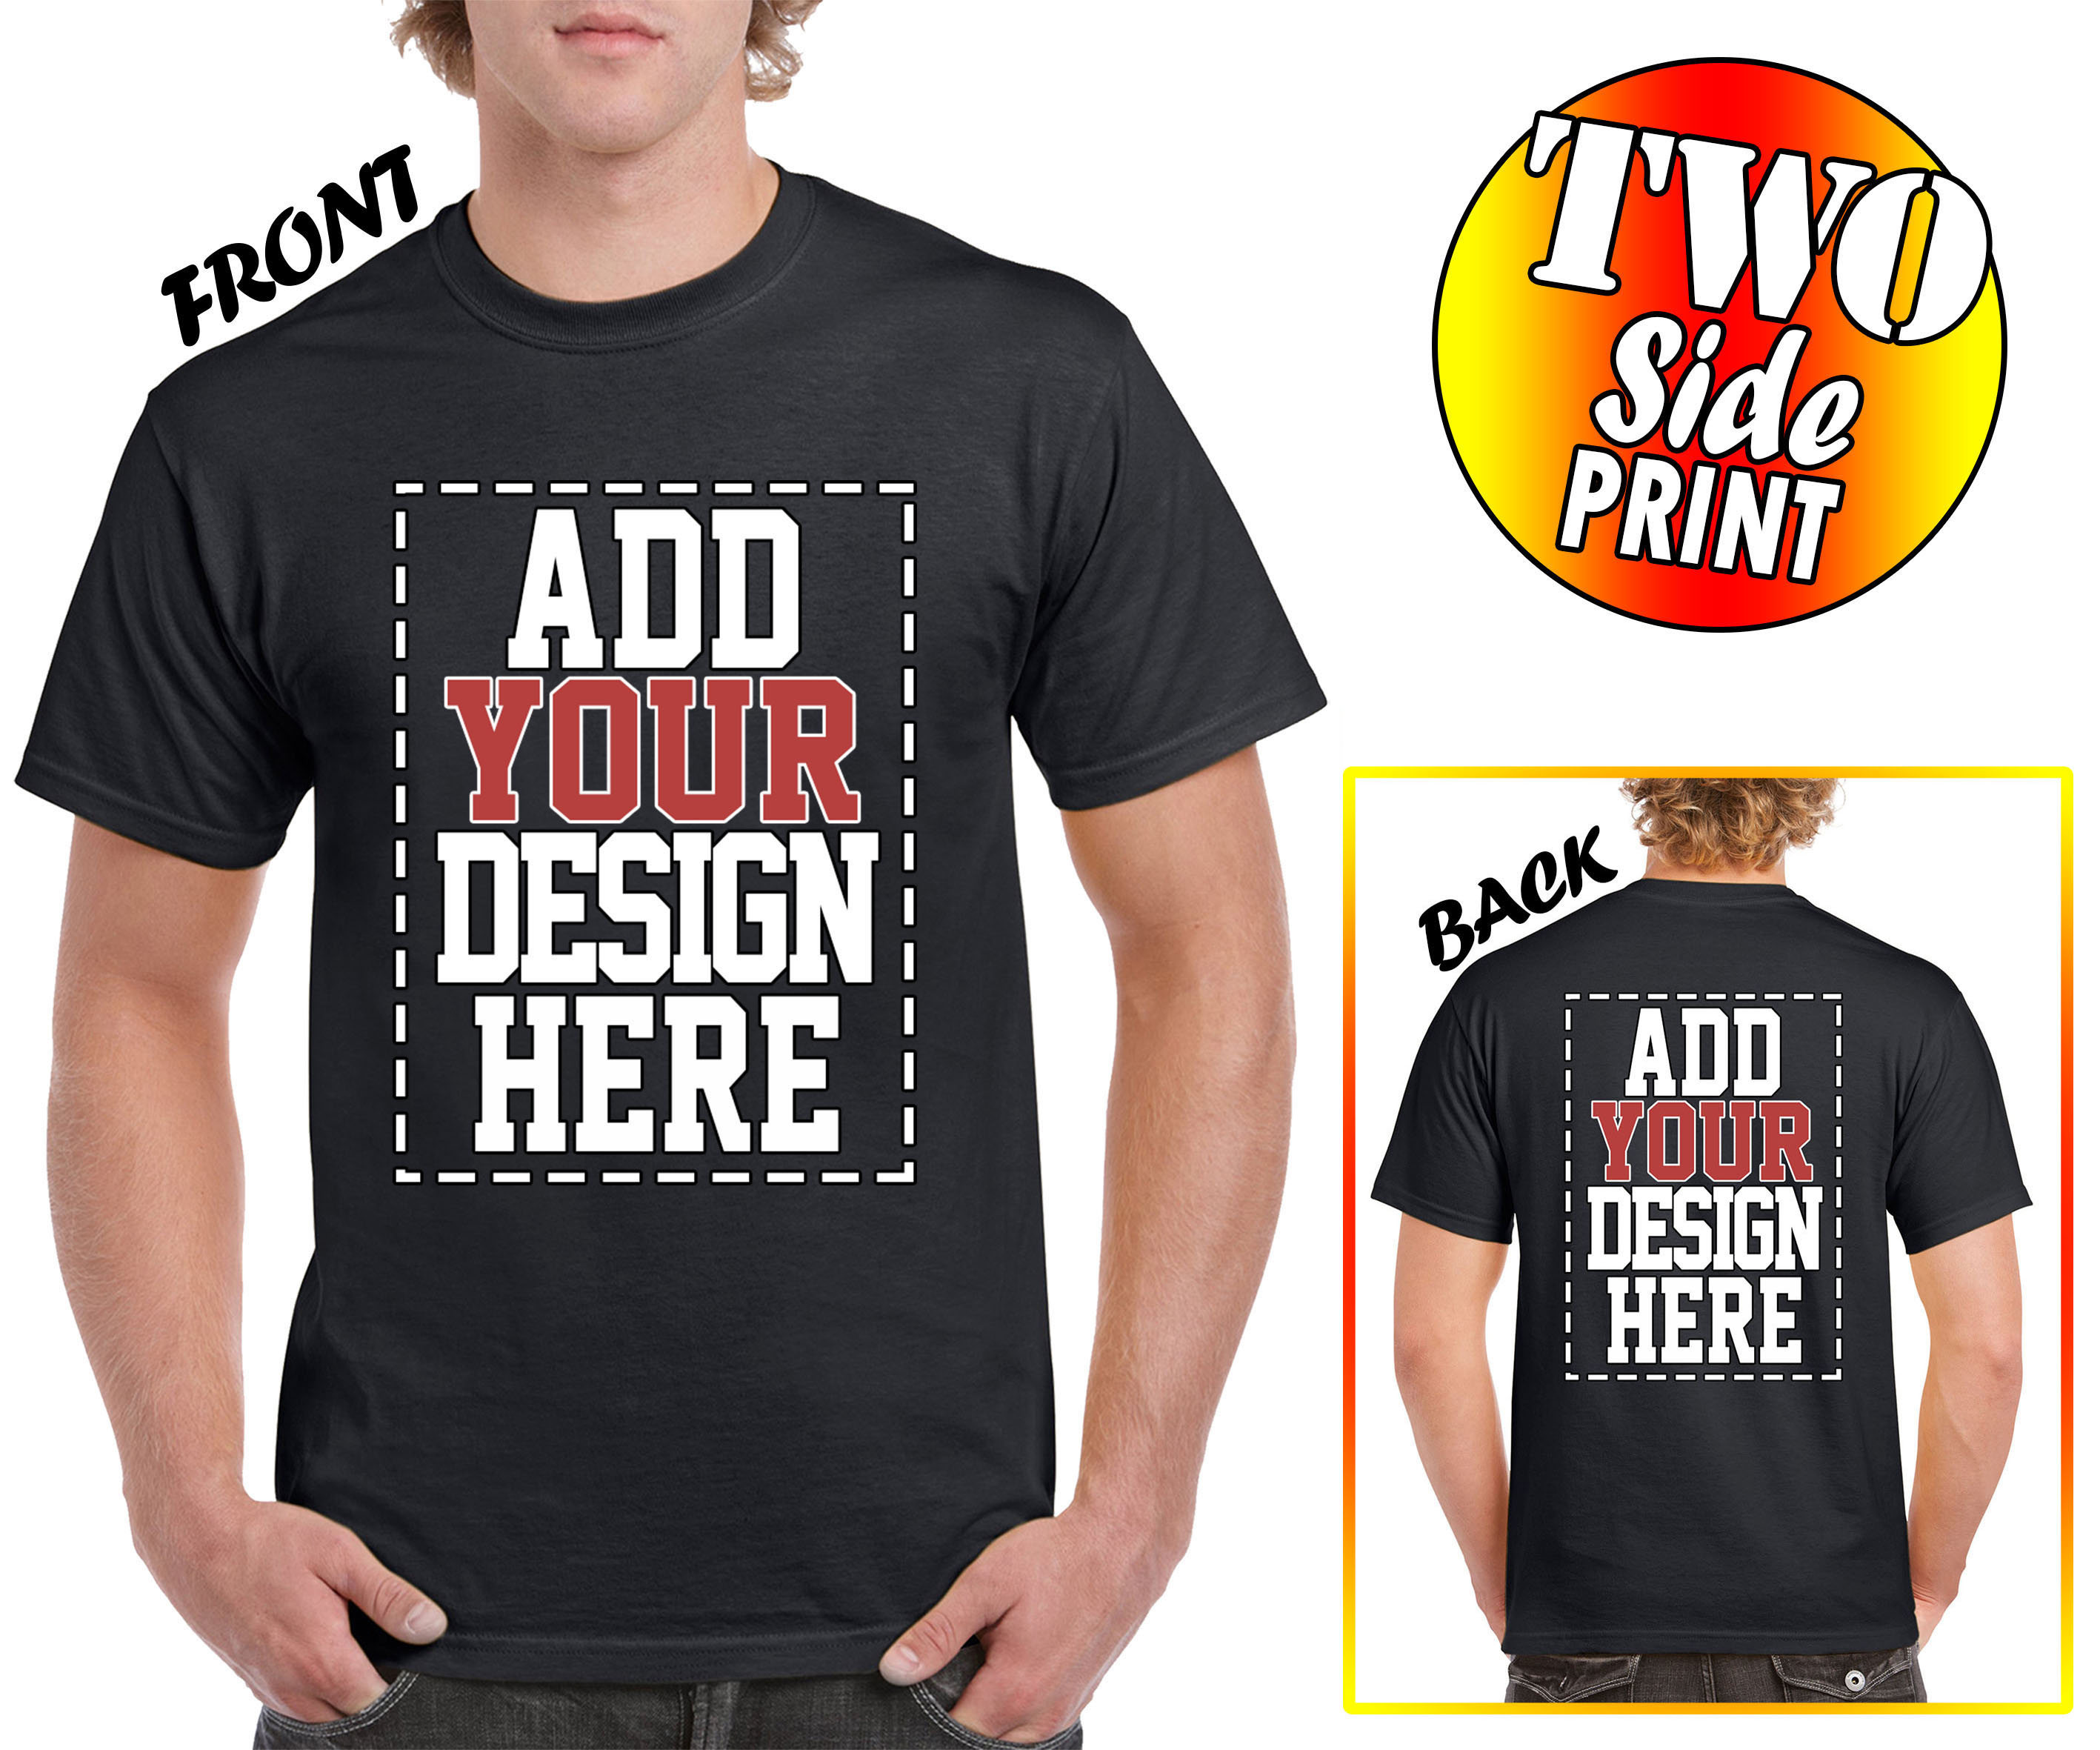 Custom 2 Sided T Shirts Design Your Own Shirt Front And Etsy